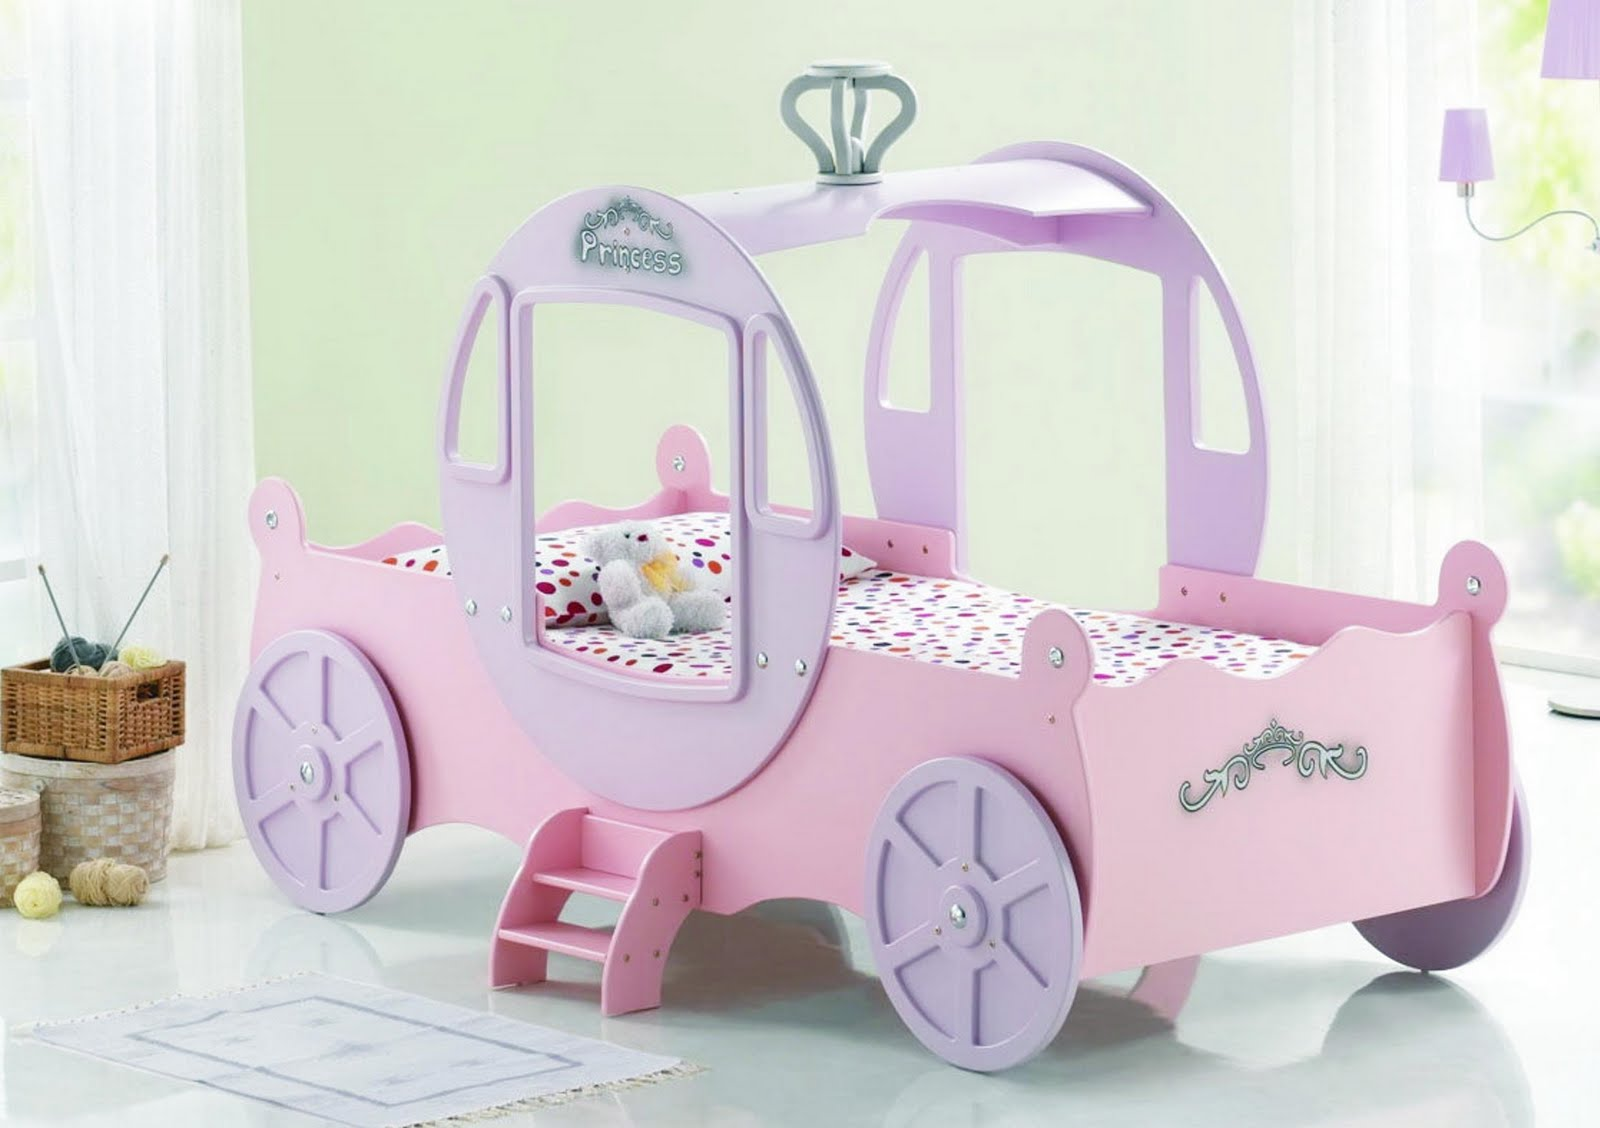 Toddler Bed For Girl Princess: Beds With Quality At Discounted Prices: KIds Beds For Boys